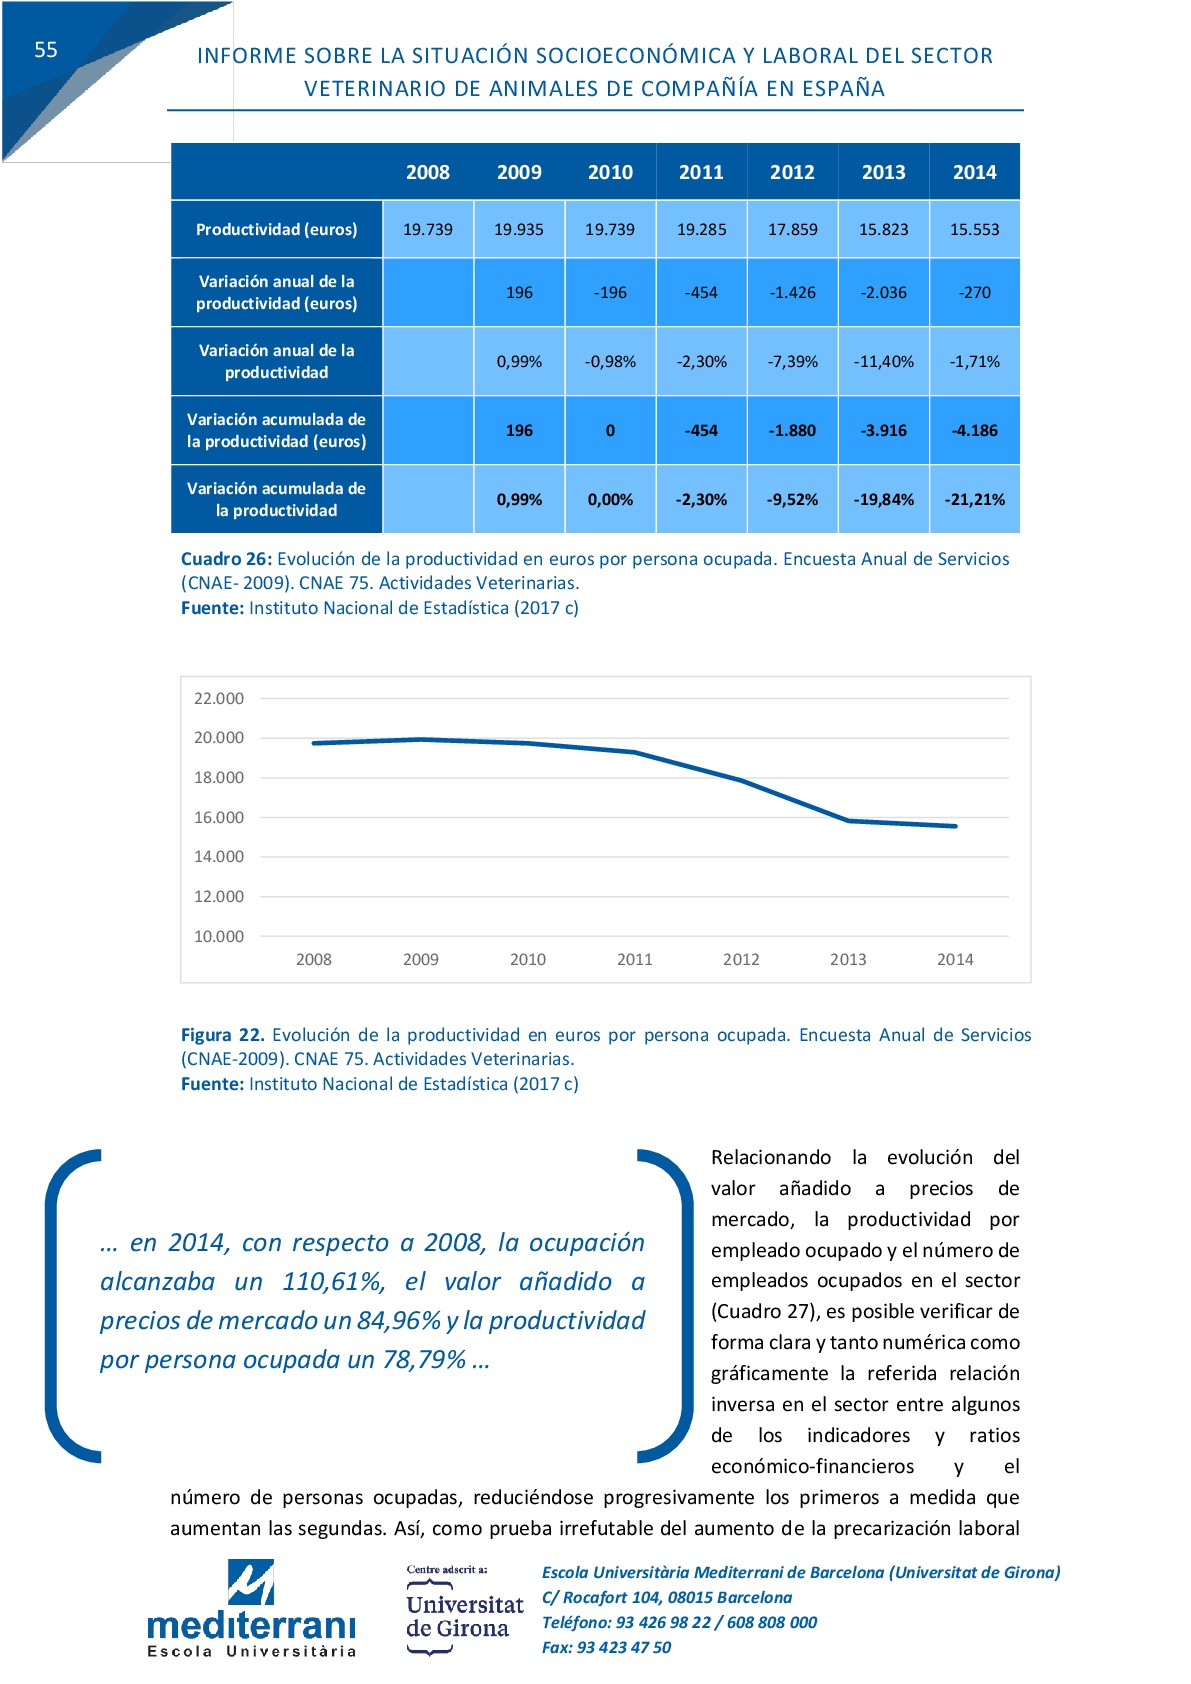 Informe-Veterinario-2017-+-informe-legal-2015-(3)-060